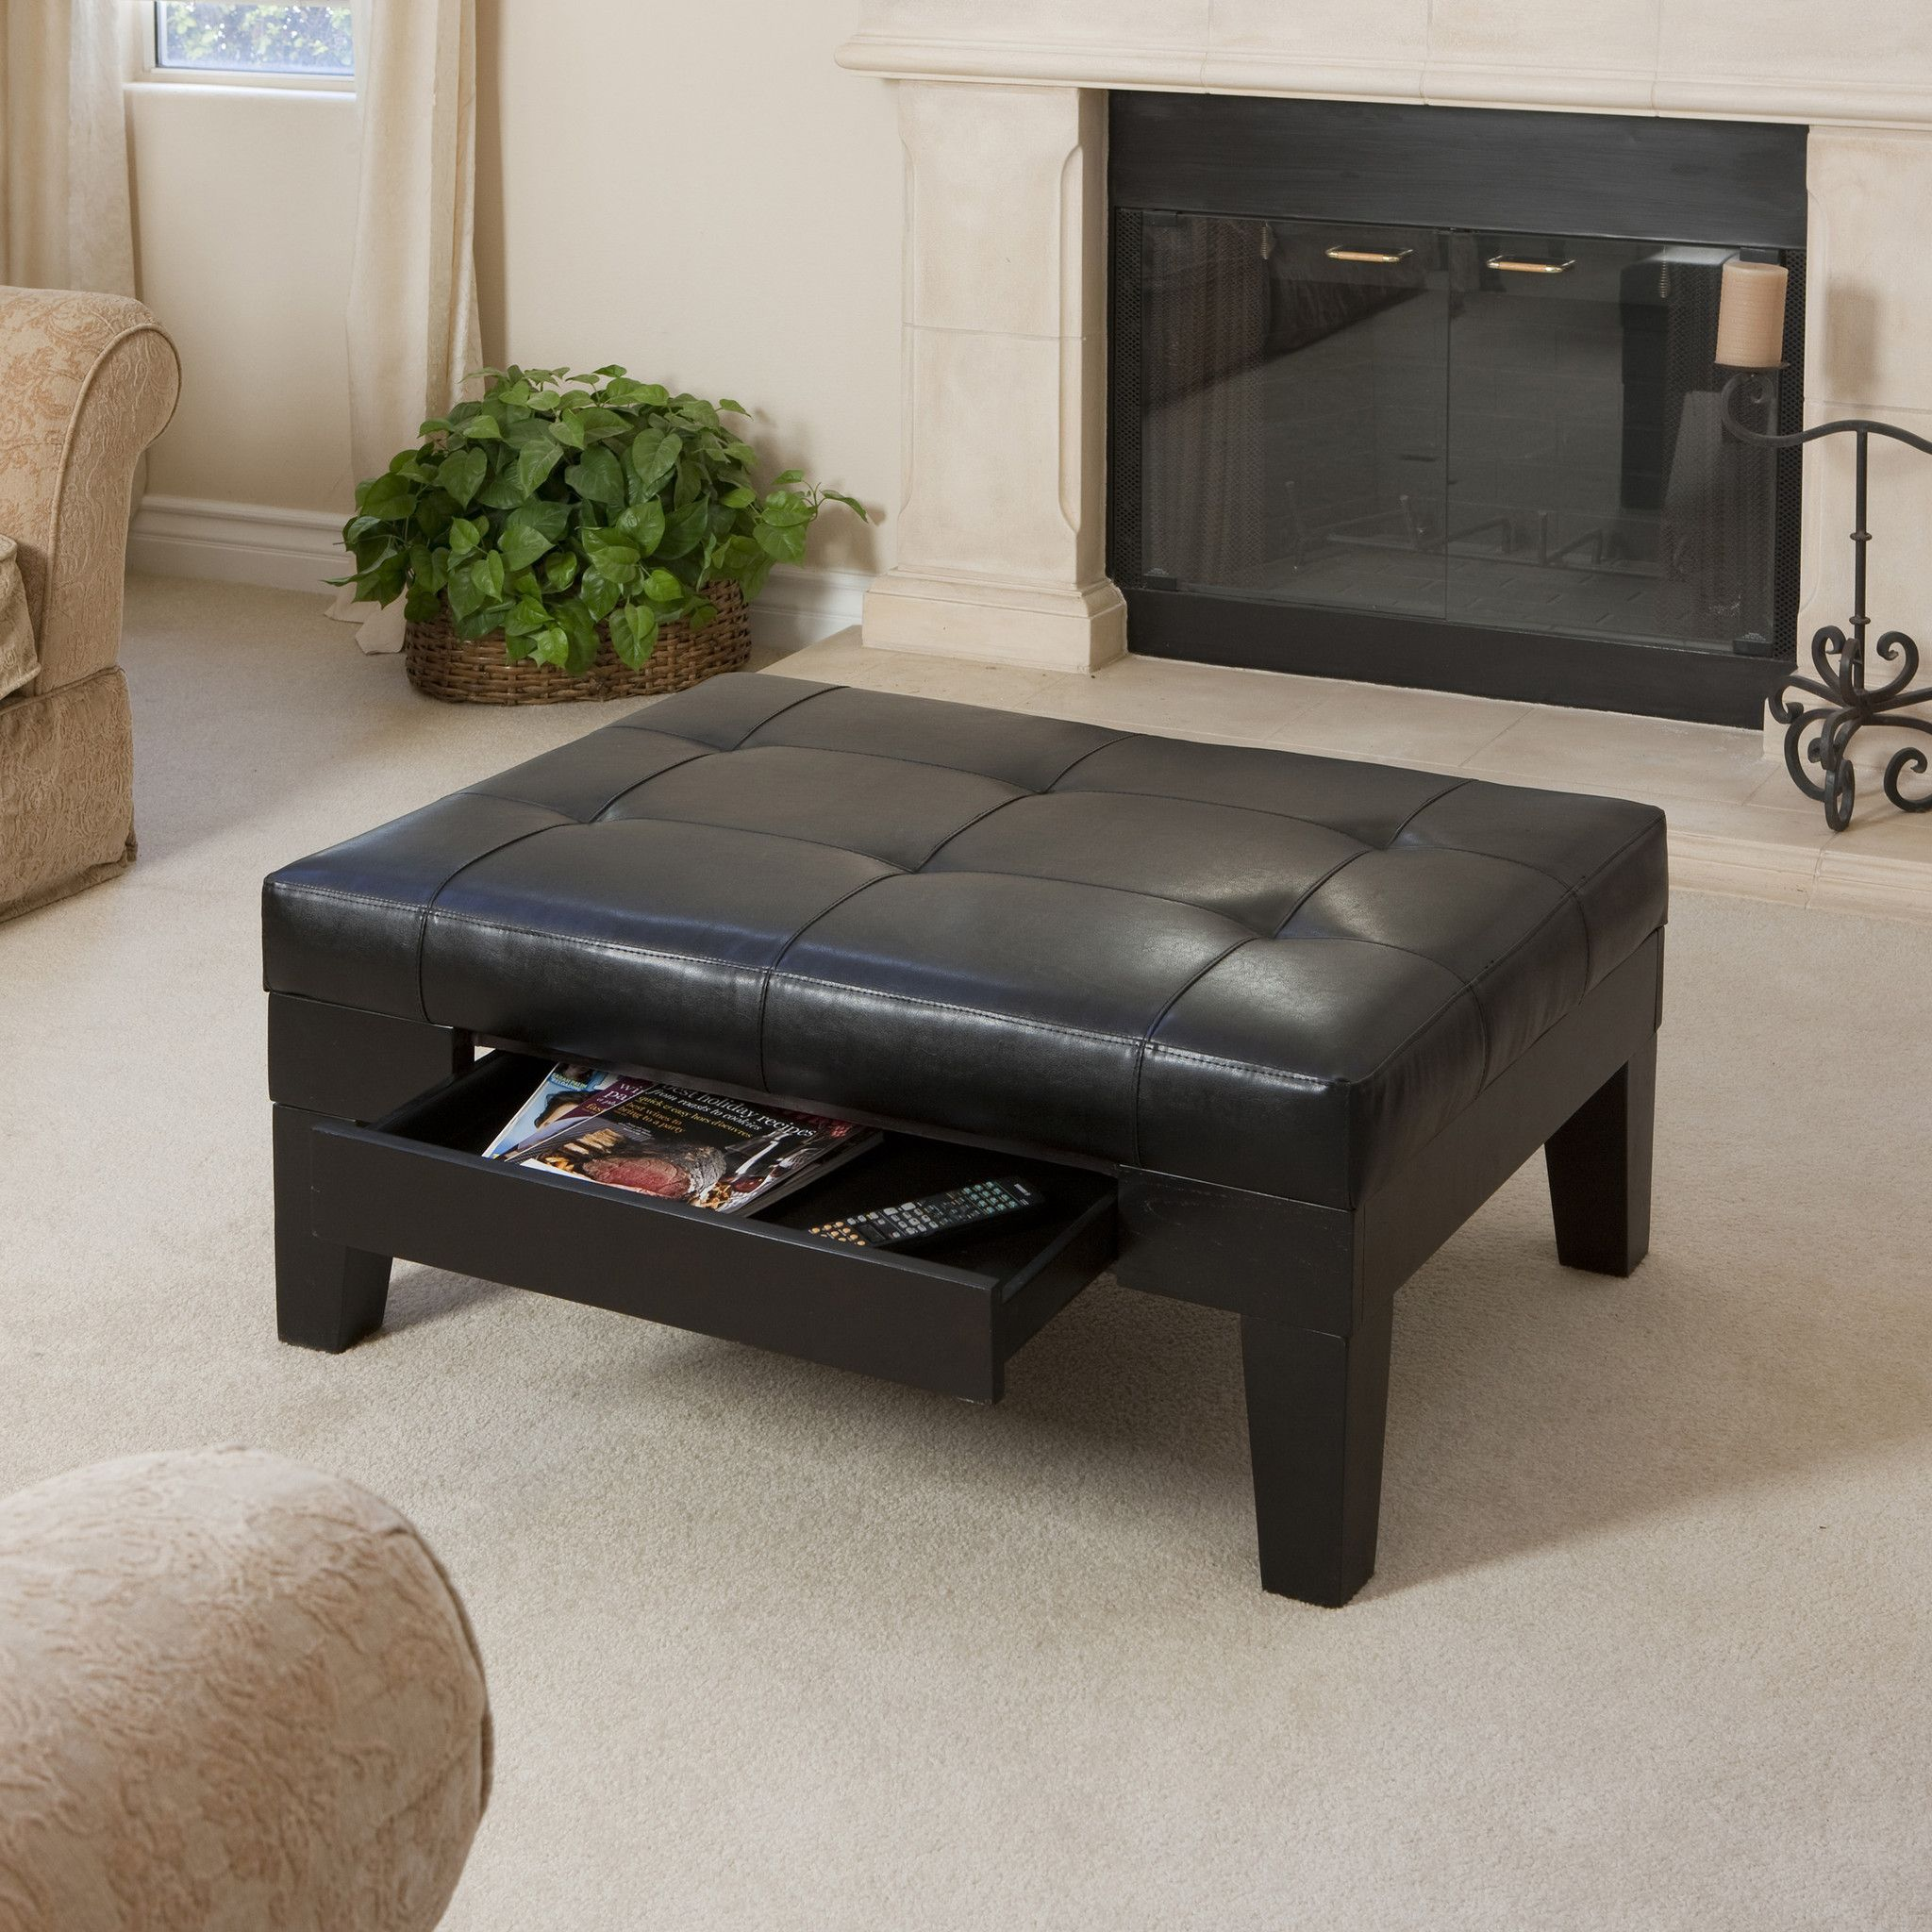 Tucson black leather storage ottoman coffee table storage tucson black leather storage ottoman coffee table geotapseo Gallery